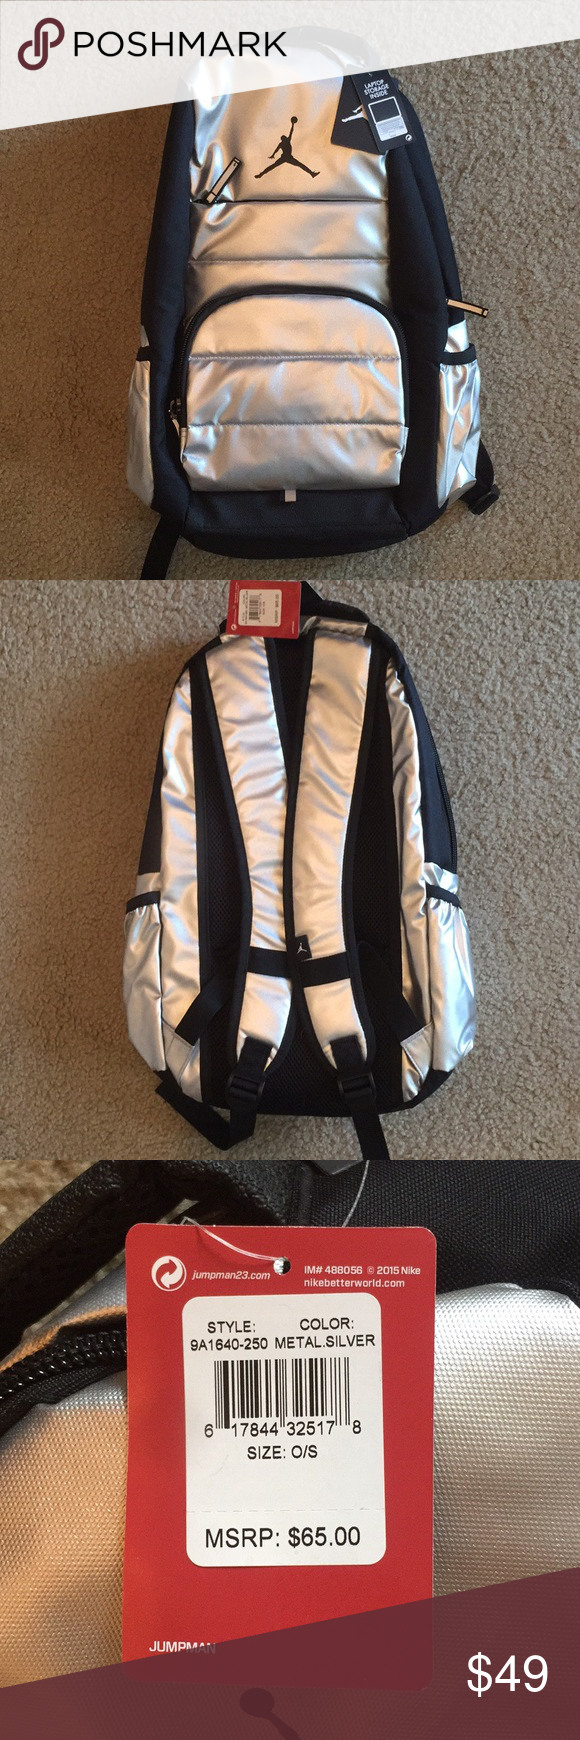 b4b2eb90823b23 NEW Jordan Brand Backpack Brand new Jordan Brand Backpack! The tags are still  attached and